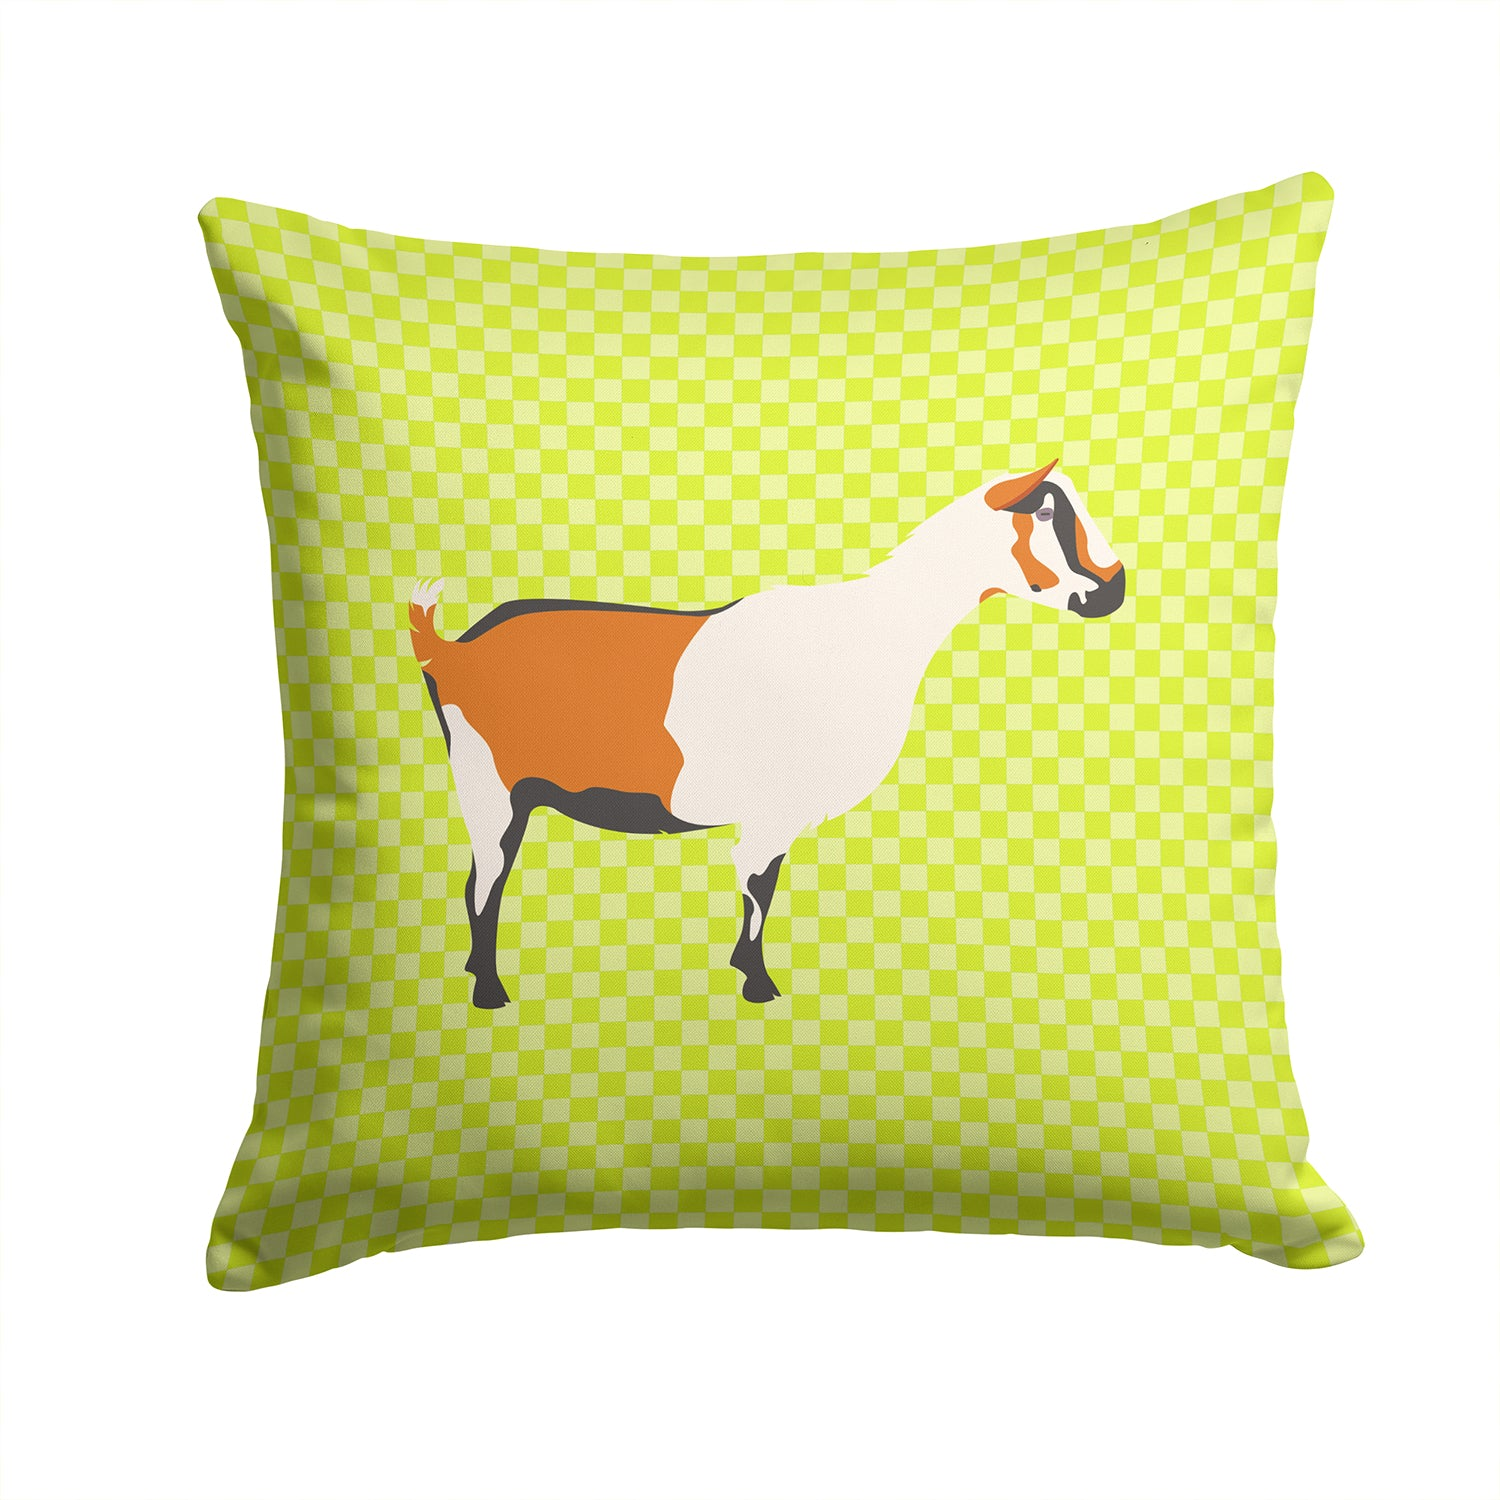 Alpine Goat Green Fabric Decorative Pillow BB7706PW1414 by Caroline's Treasures